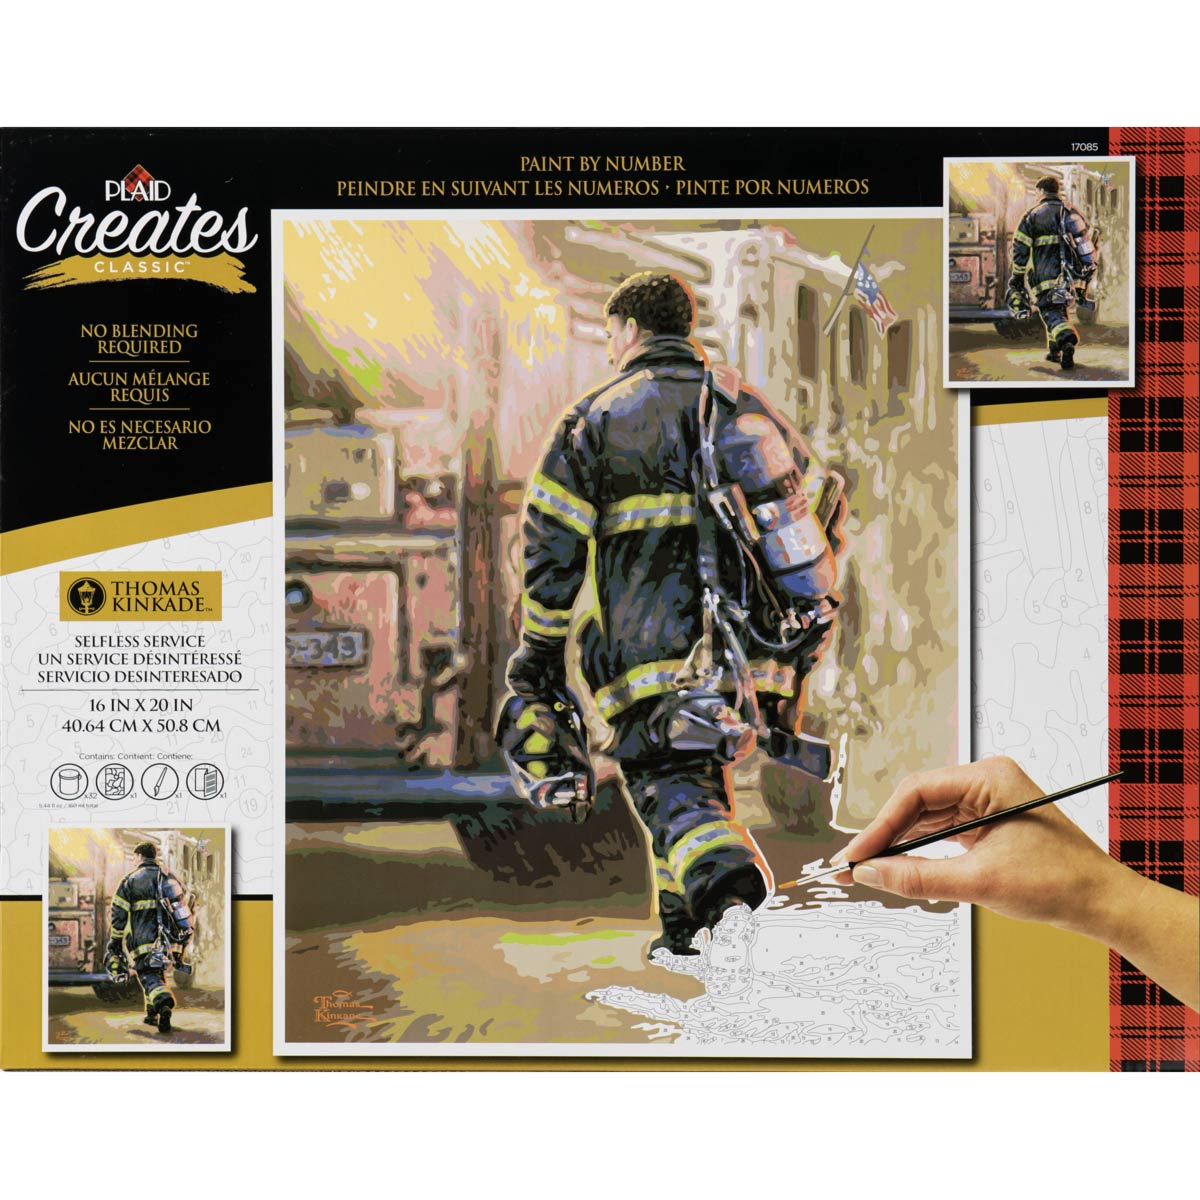 Plaid ® Paint by Number - Thomas Kinkade™ - Selfless Service